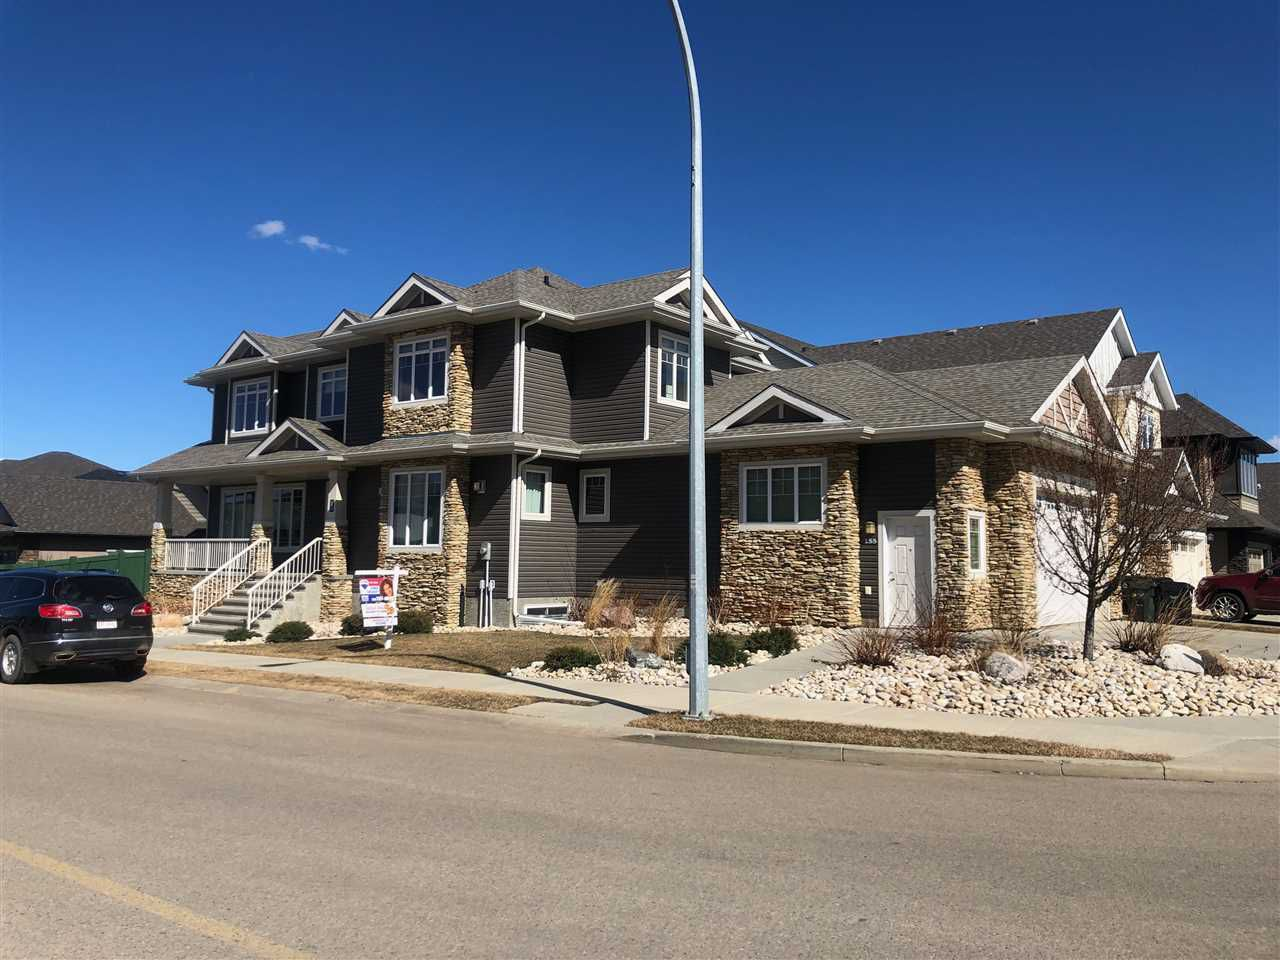 Main Photo: 155 CAMPBELL Drive: Sherwood Park House for sale : MLS®# E4148086